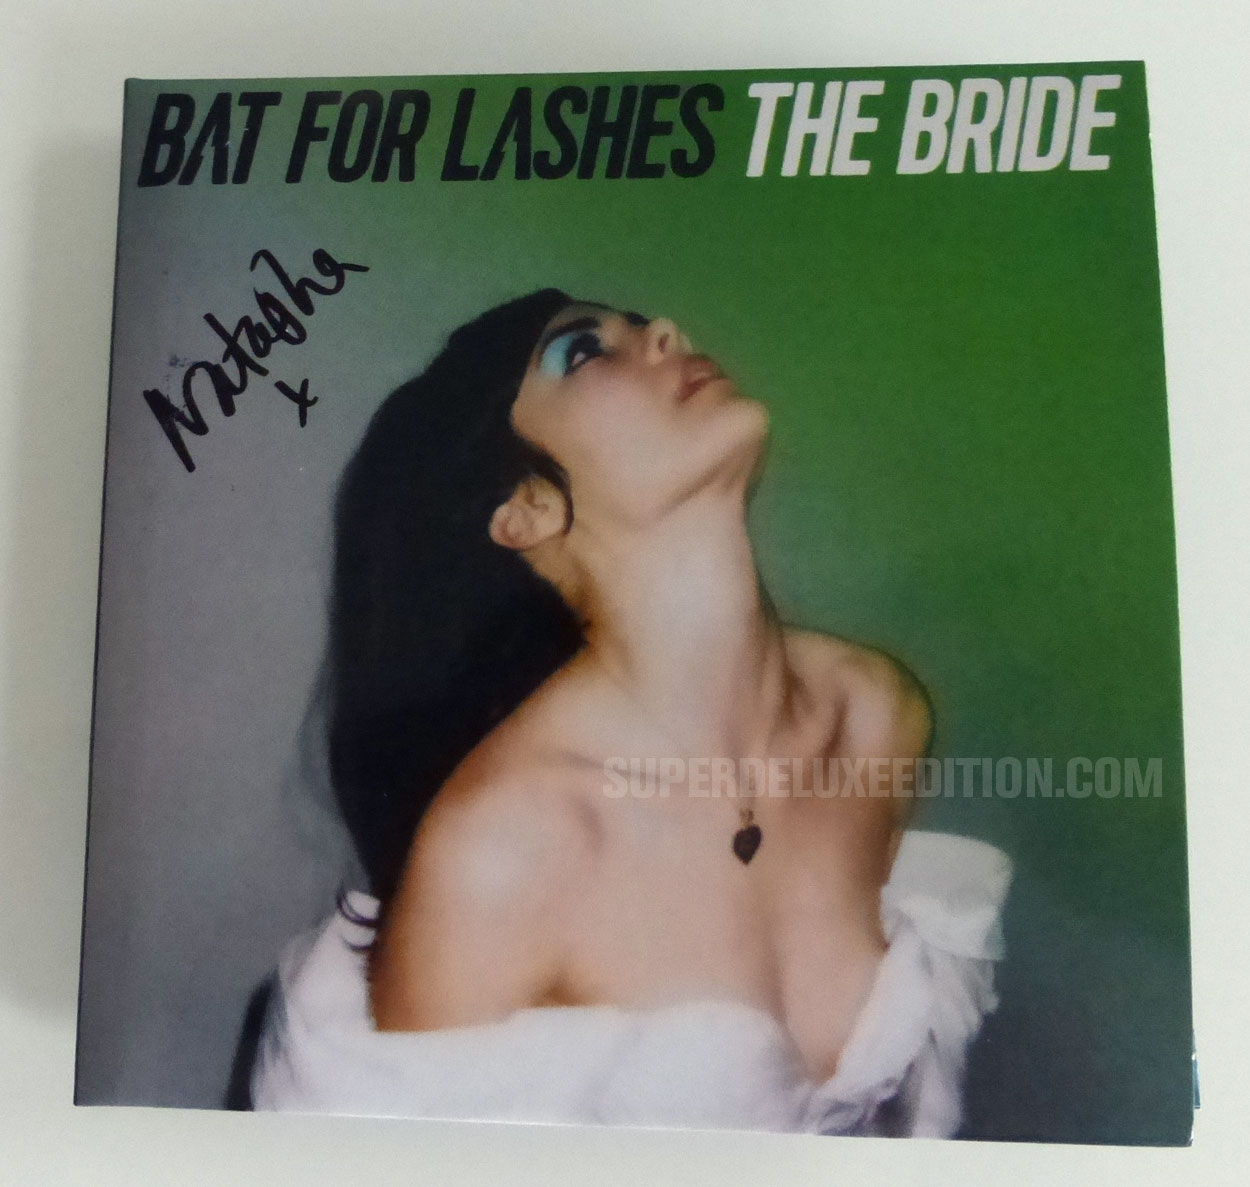 Bat For Lashes / Signed CD edition of The Bride